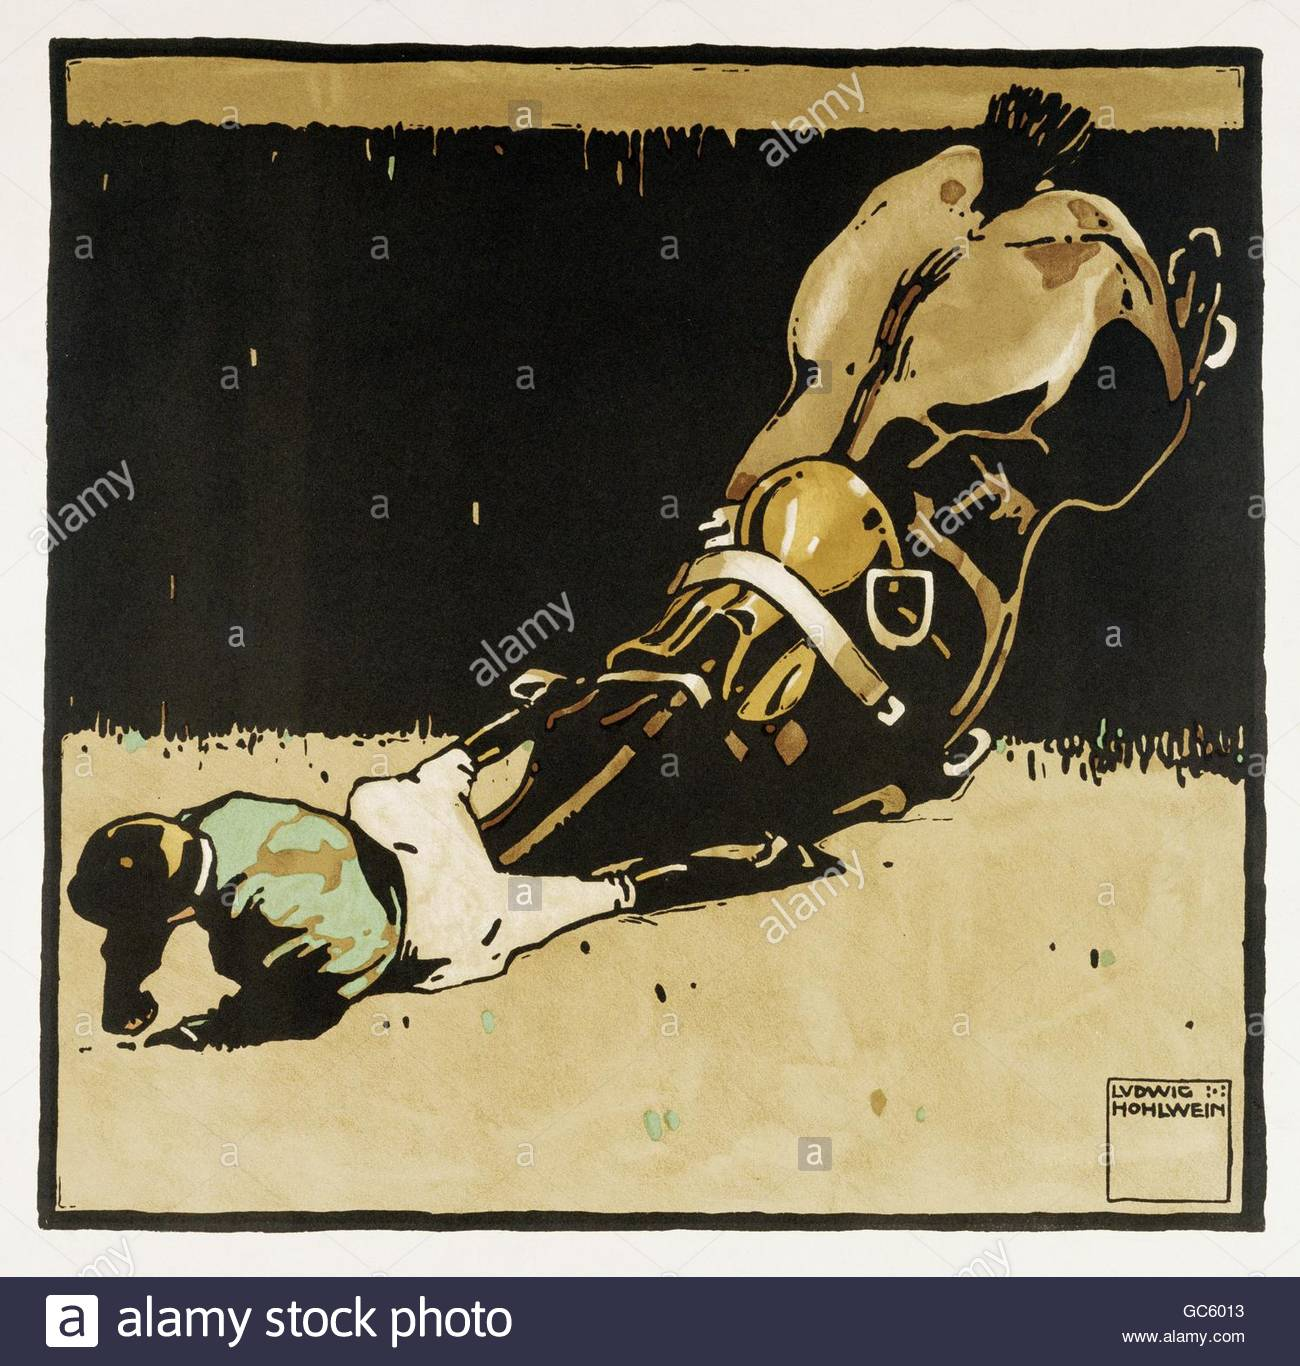 sports, riding, Fallen Jockey at steeplechase race, circa 1910, lithographic print from the series 'Turf' - Stock Image